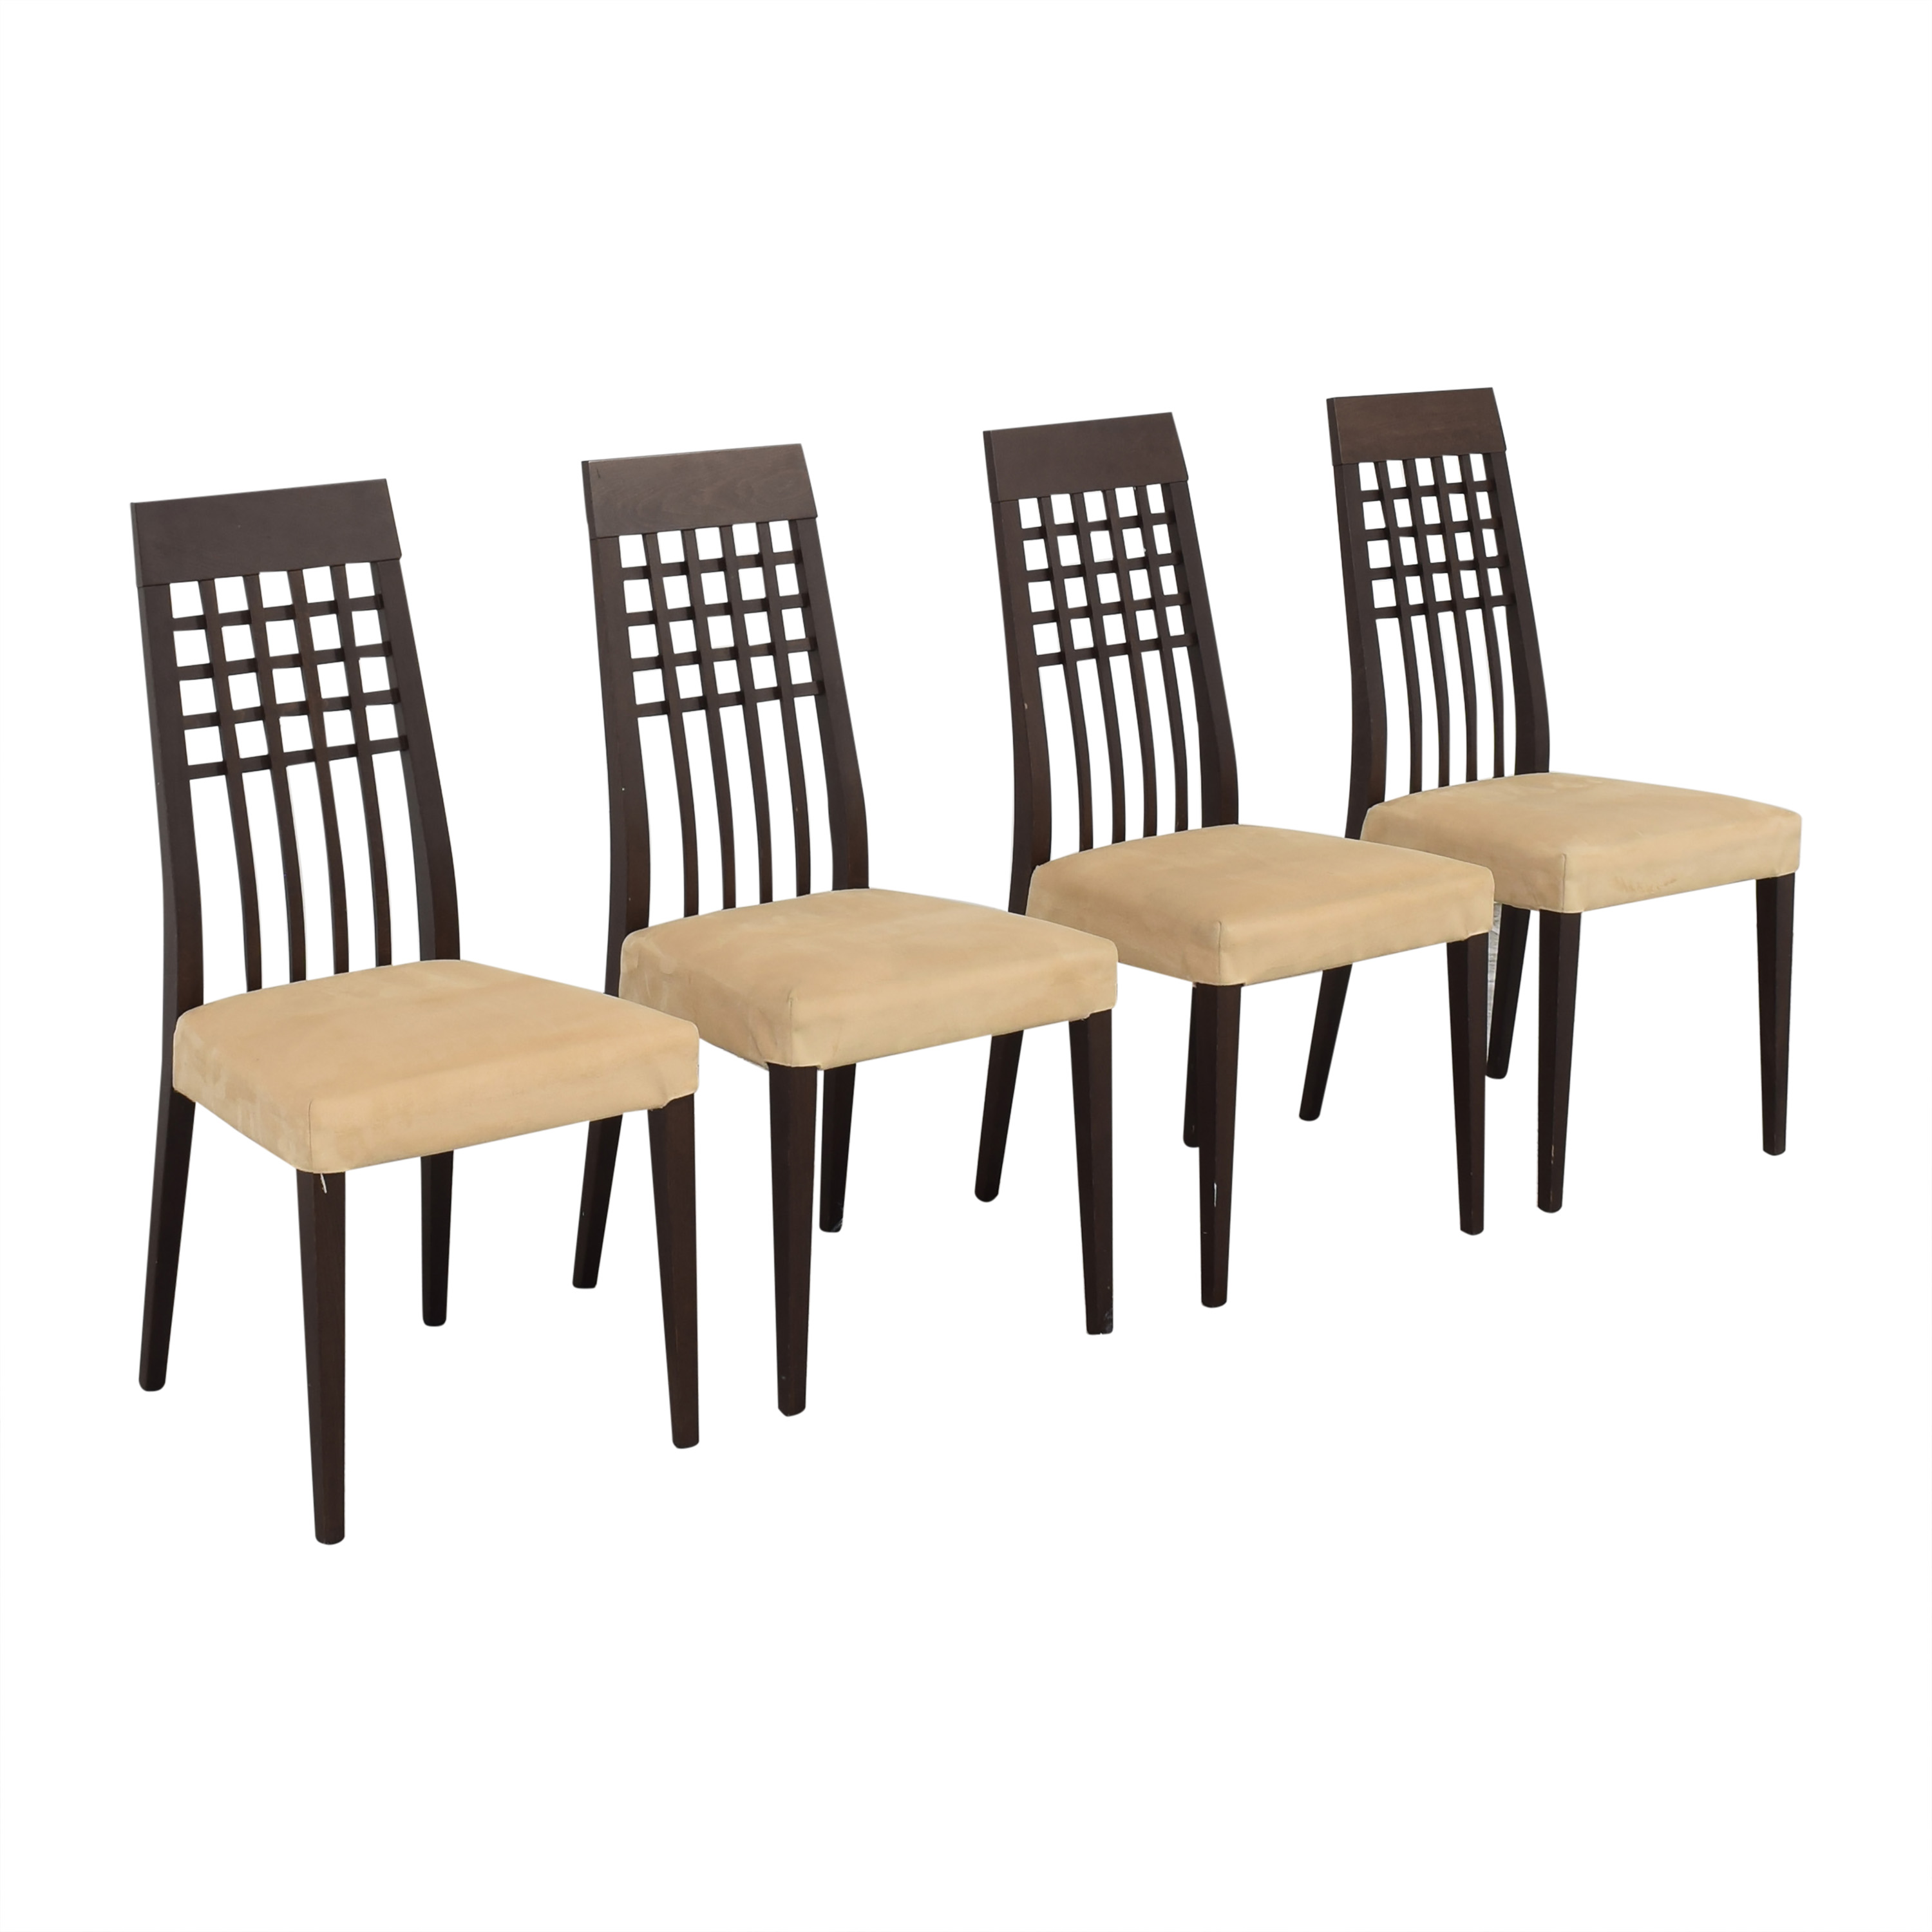 Calligaris Calligaris Upholstered Dining Chairs beige and brown